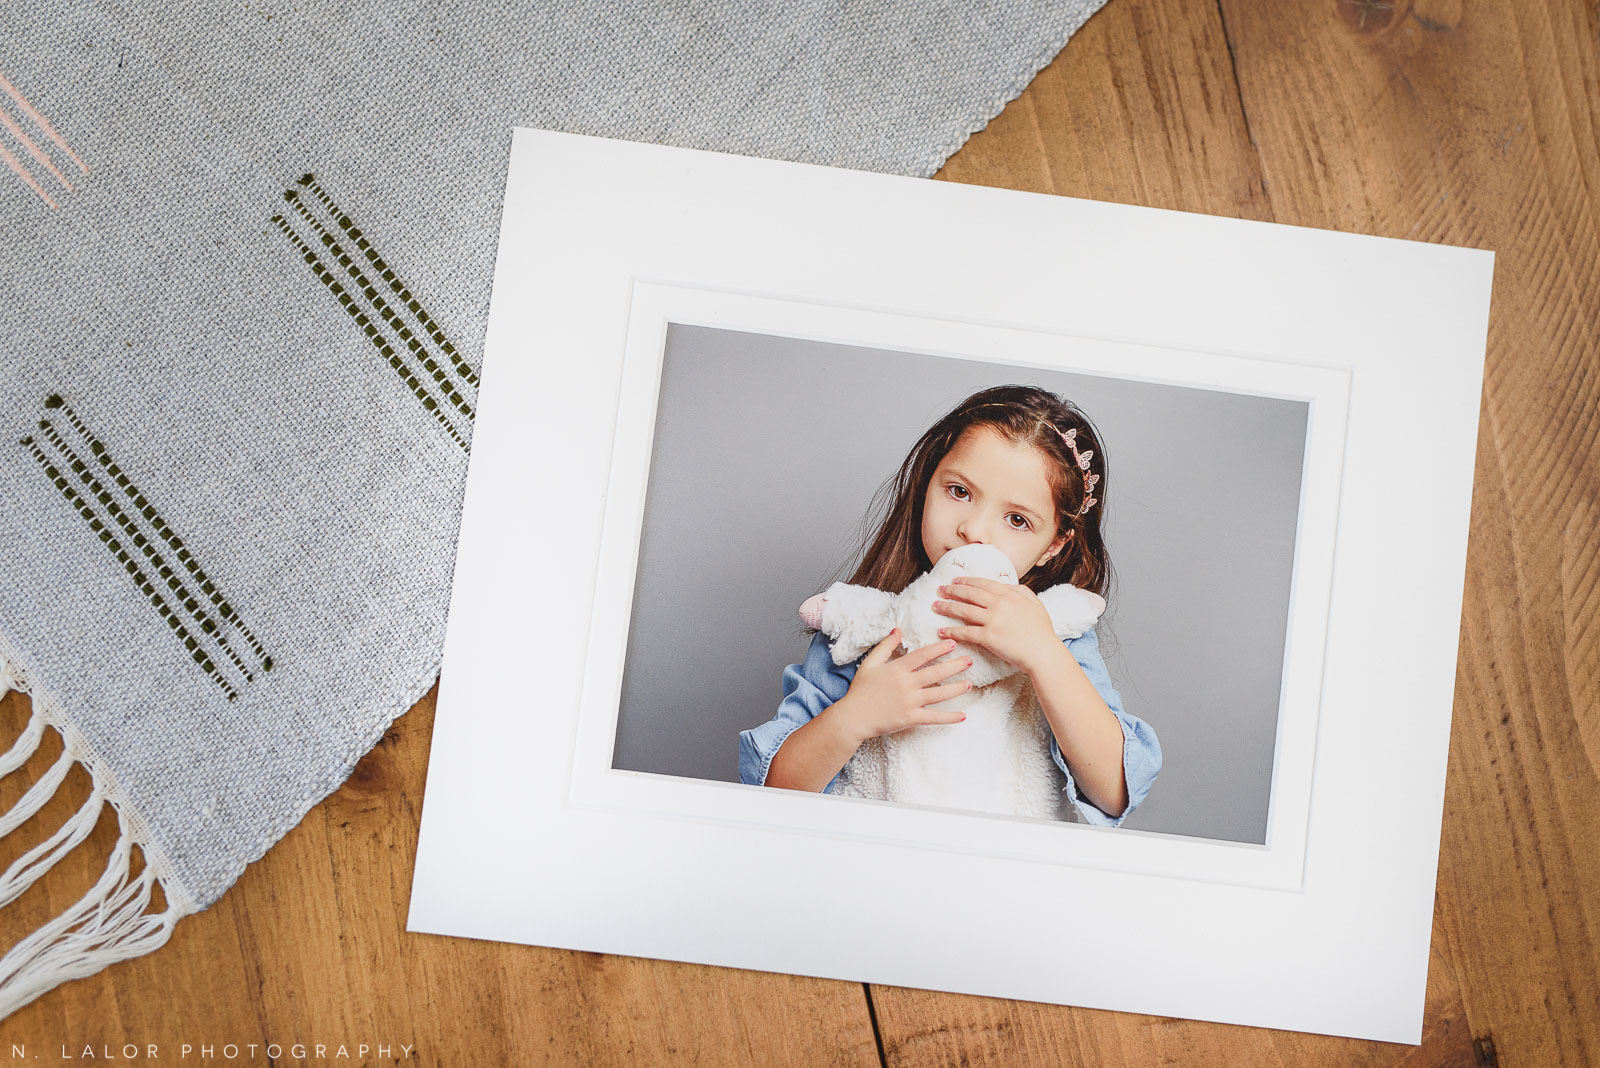 """Image of a 5x7"""" fine art print in a white gallery mat. Portrait and products by N. Lalor Photography in Greenwich, Connecticut."""